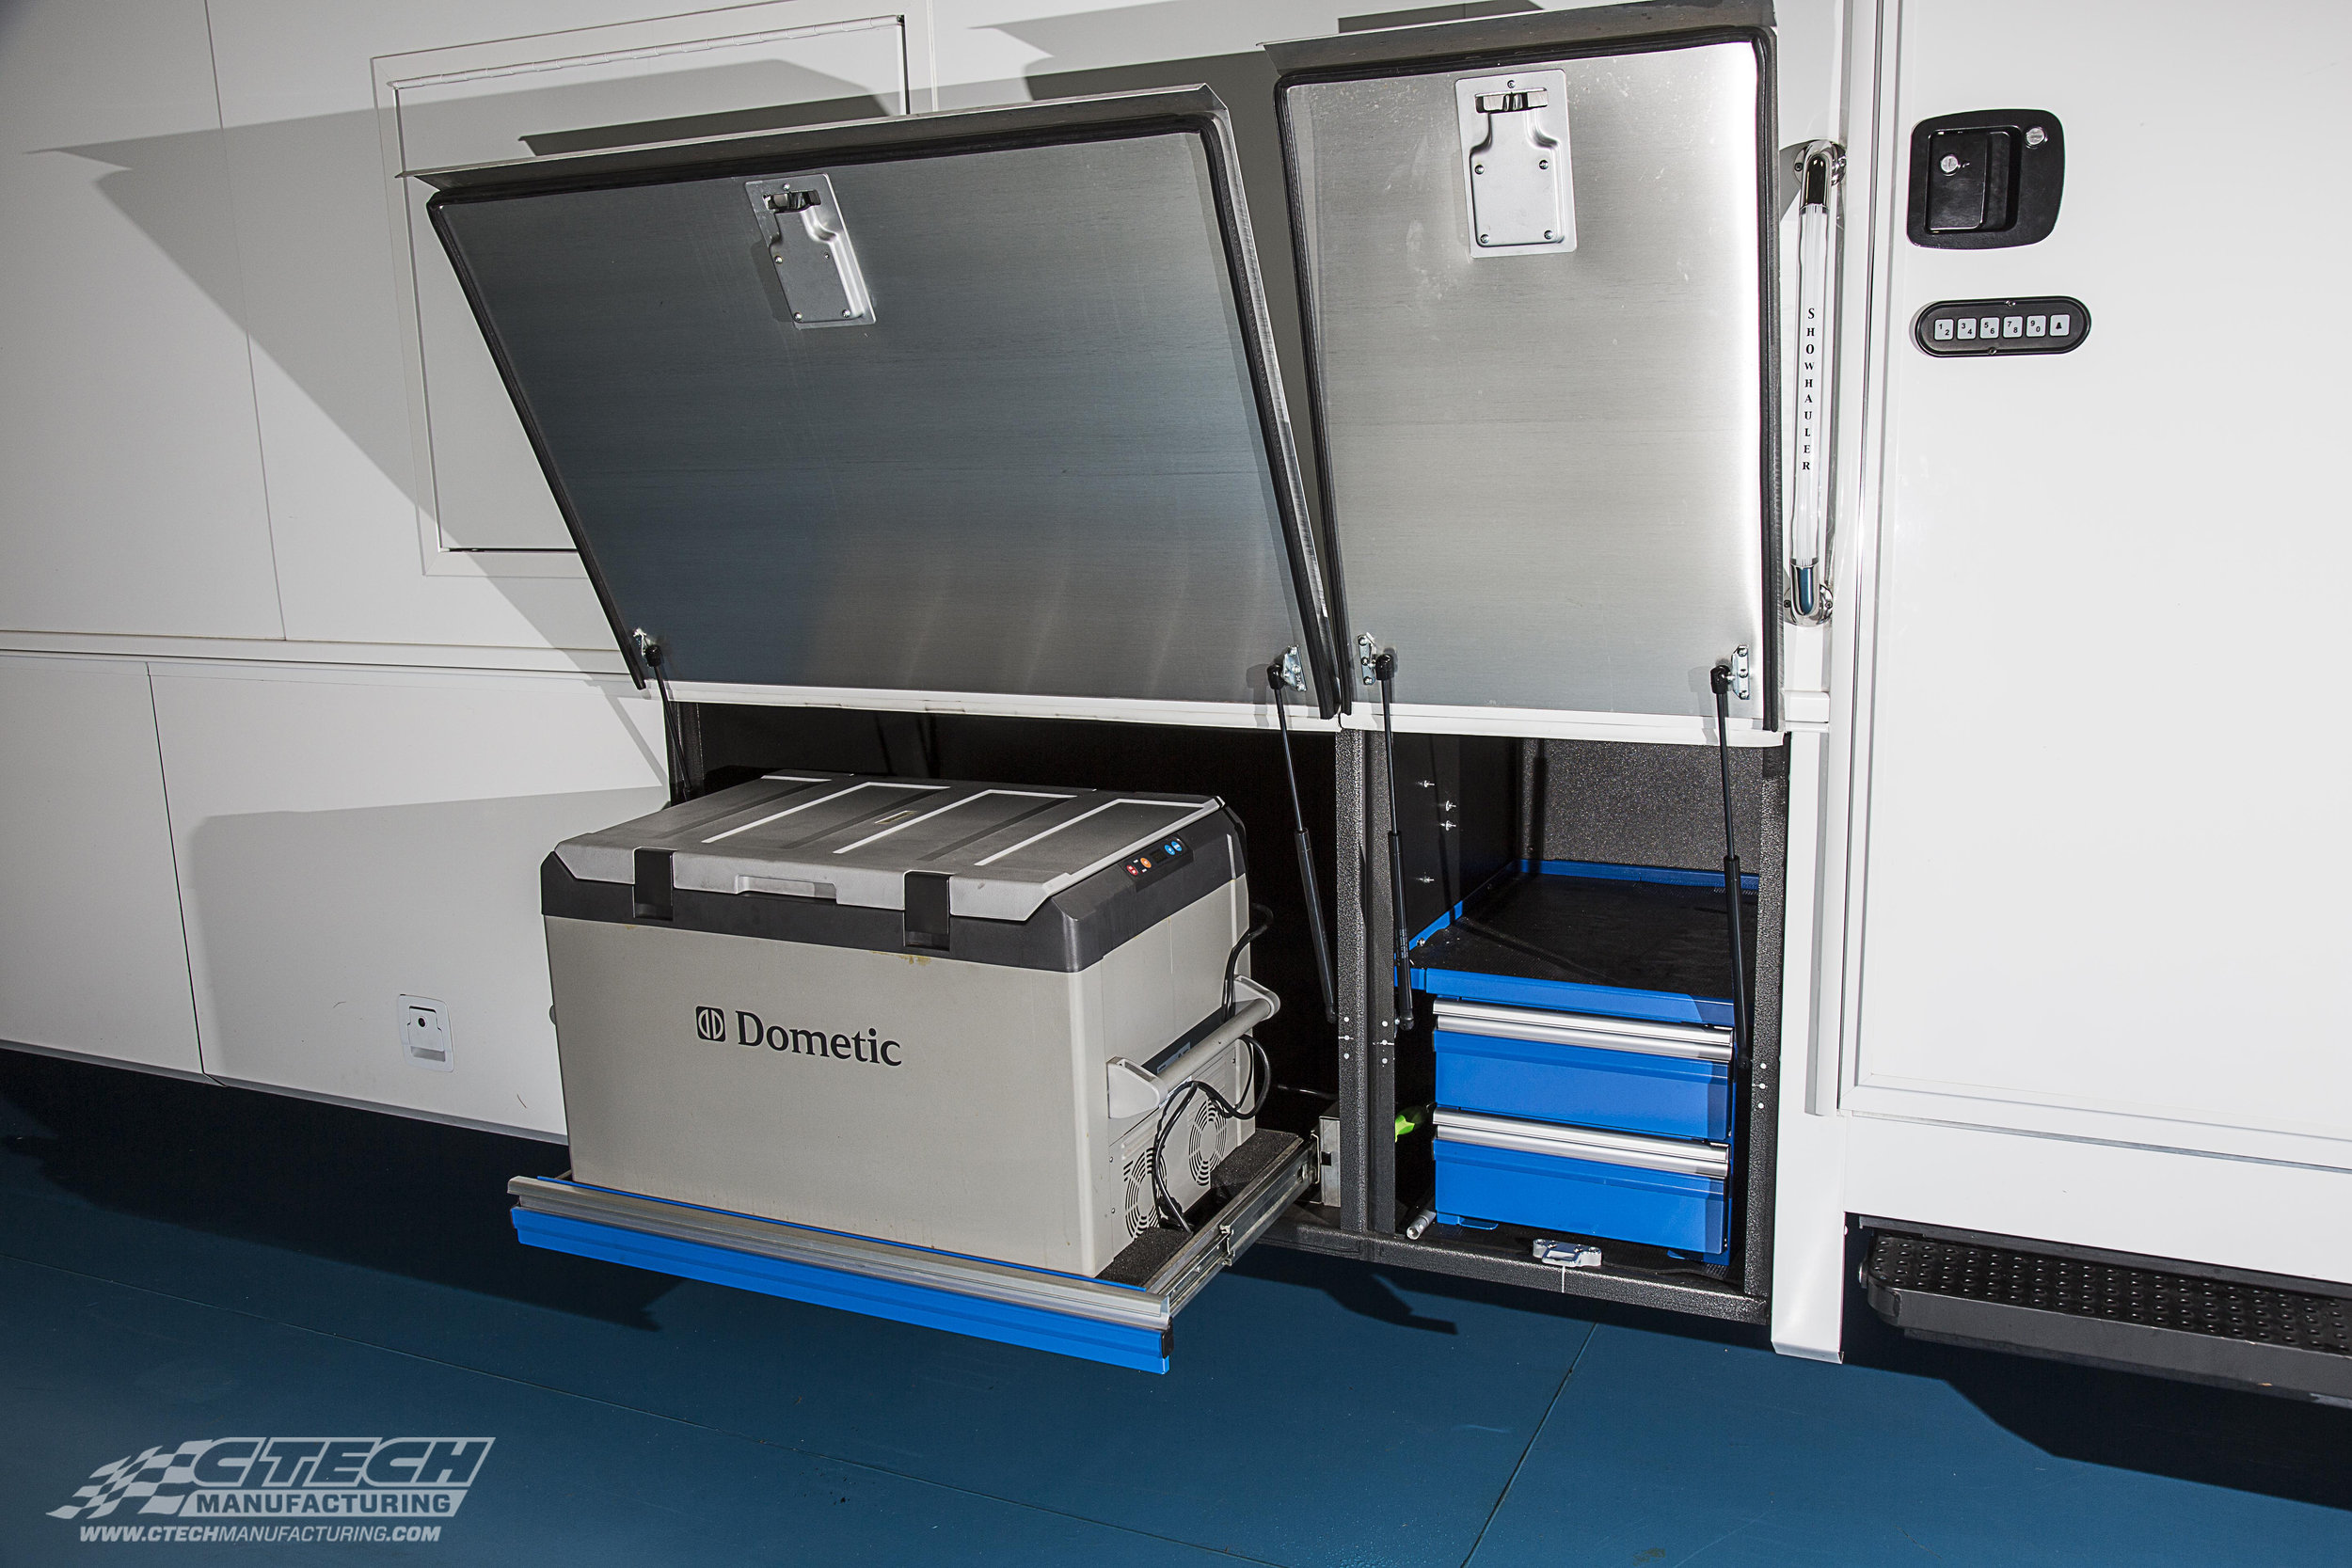 CTech drawer inserts are built for mobile applications, and can fit into any space. Meaning, your RV/Toterhome compartment storage can be easily transformed into accessible, appliance-friendly storage for any purpose.